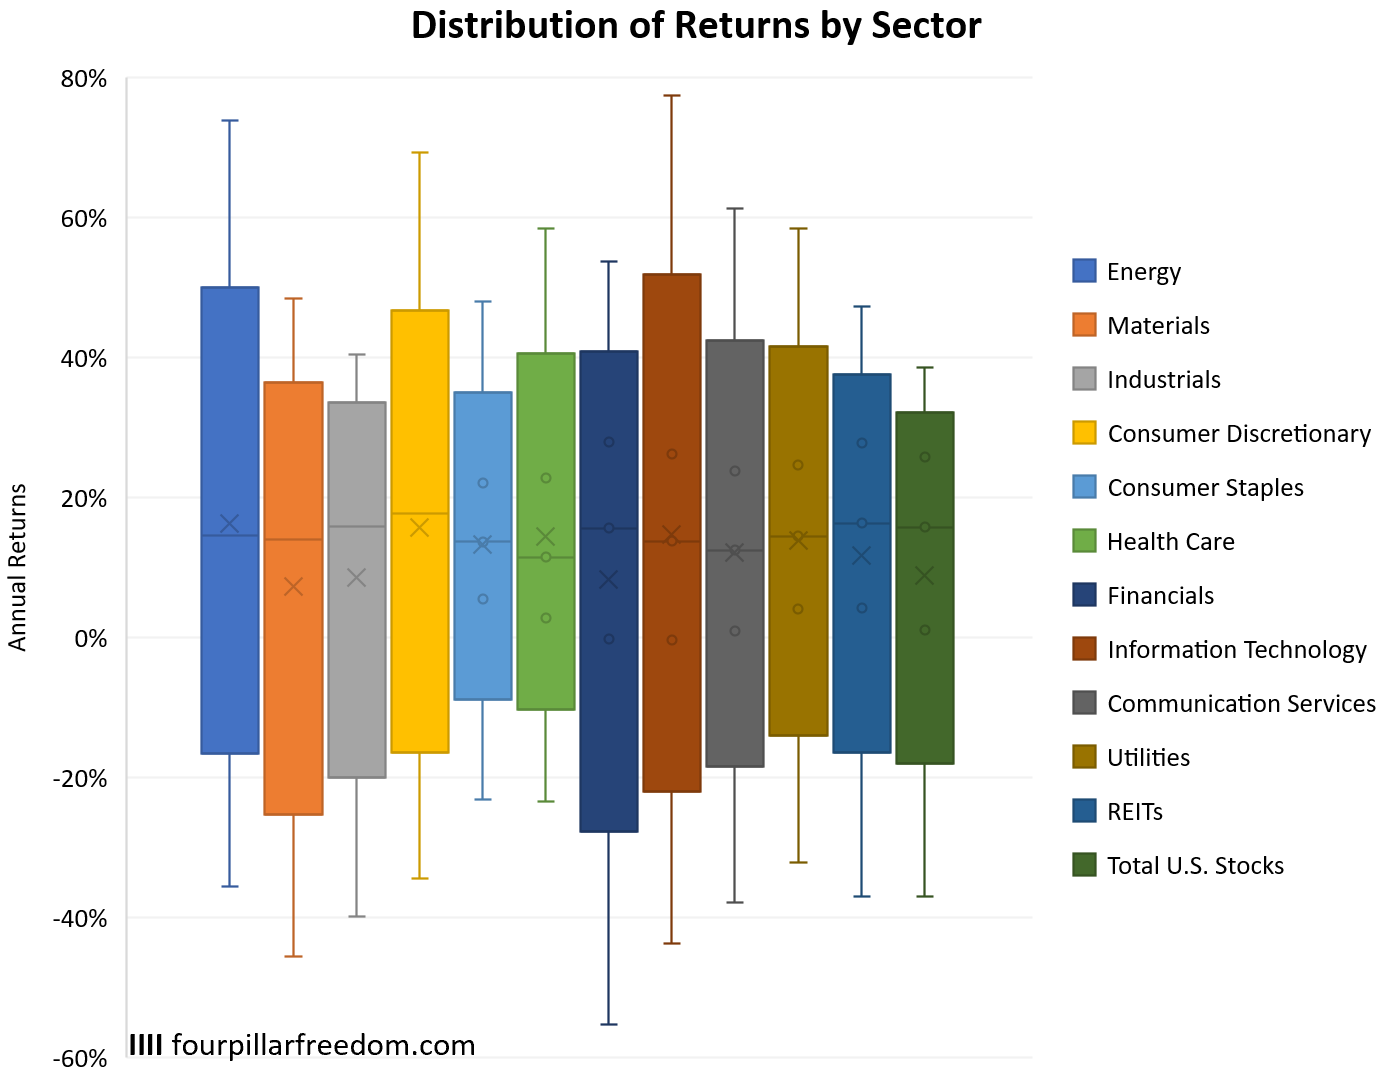 Distribution of returns by stock market sector